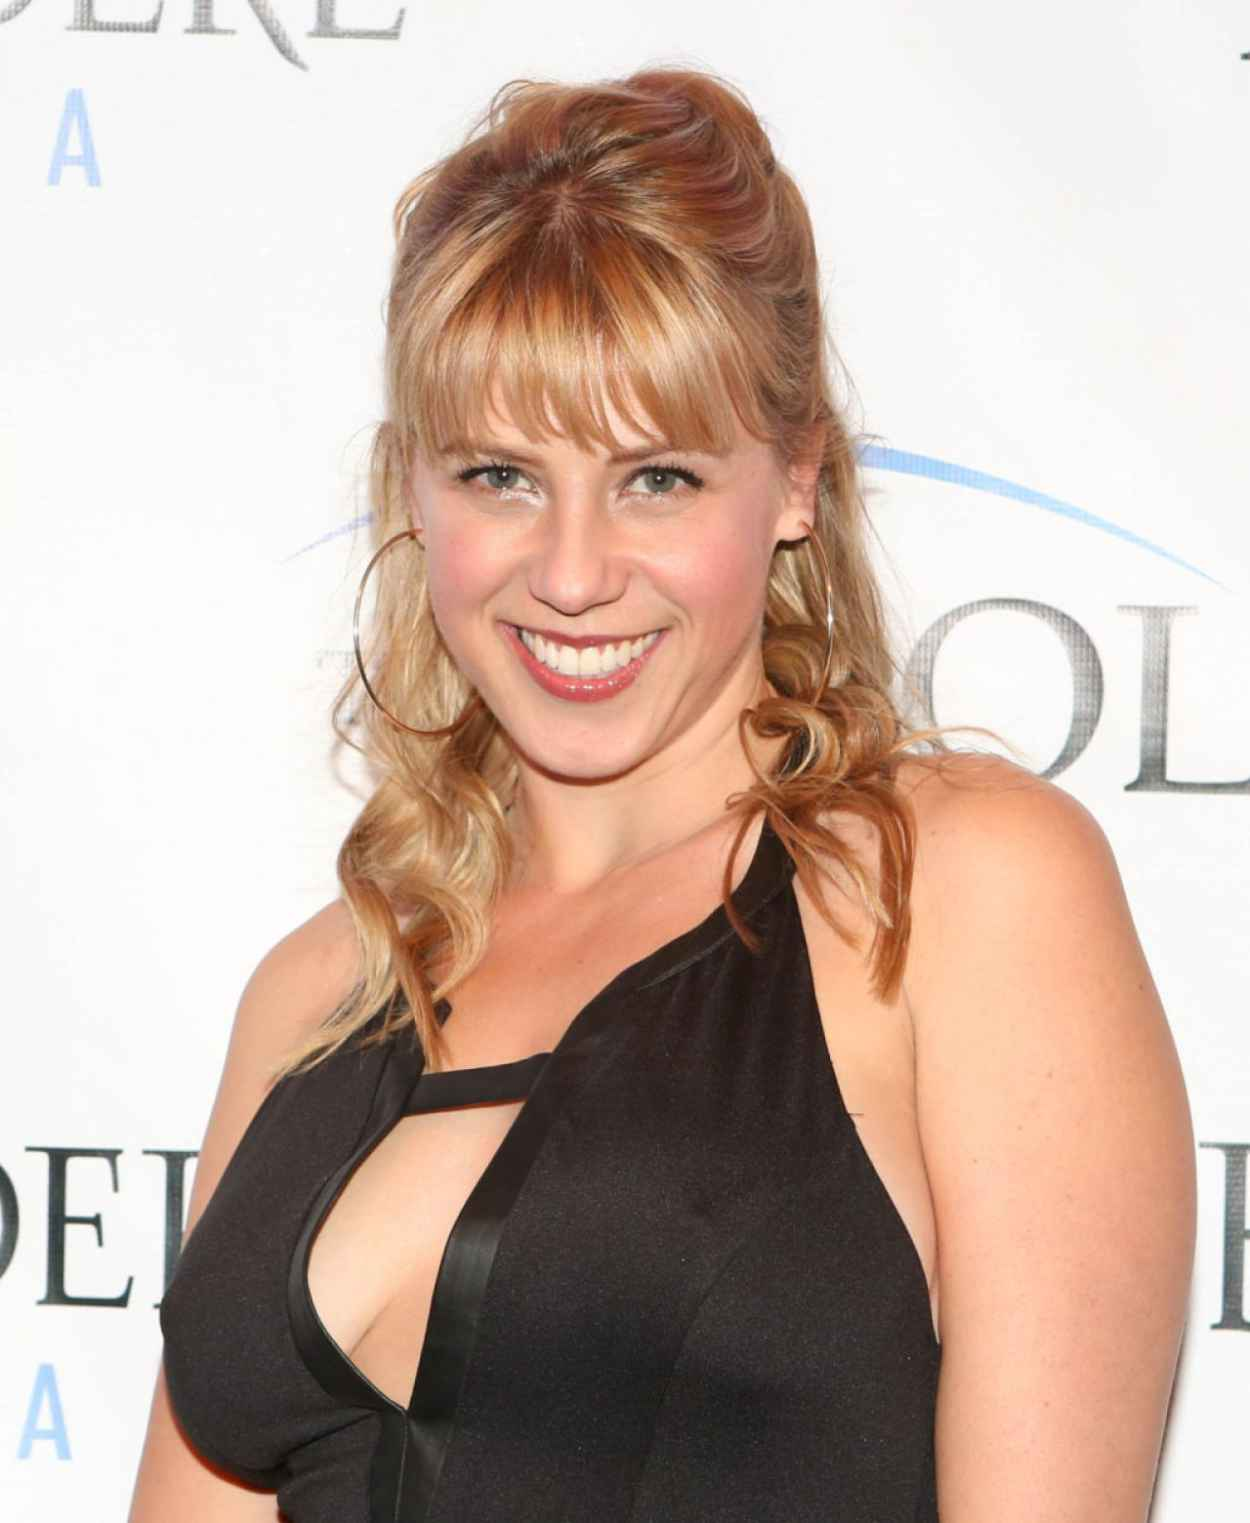 Jodie Sweetin Red Carpet Photos - The Pool After Dark in Atlantic City-1